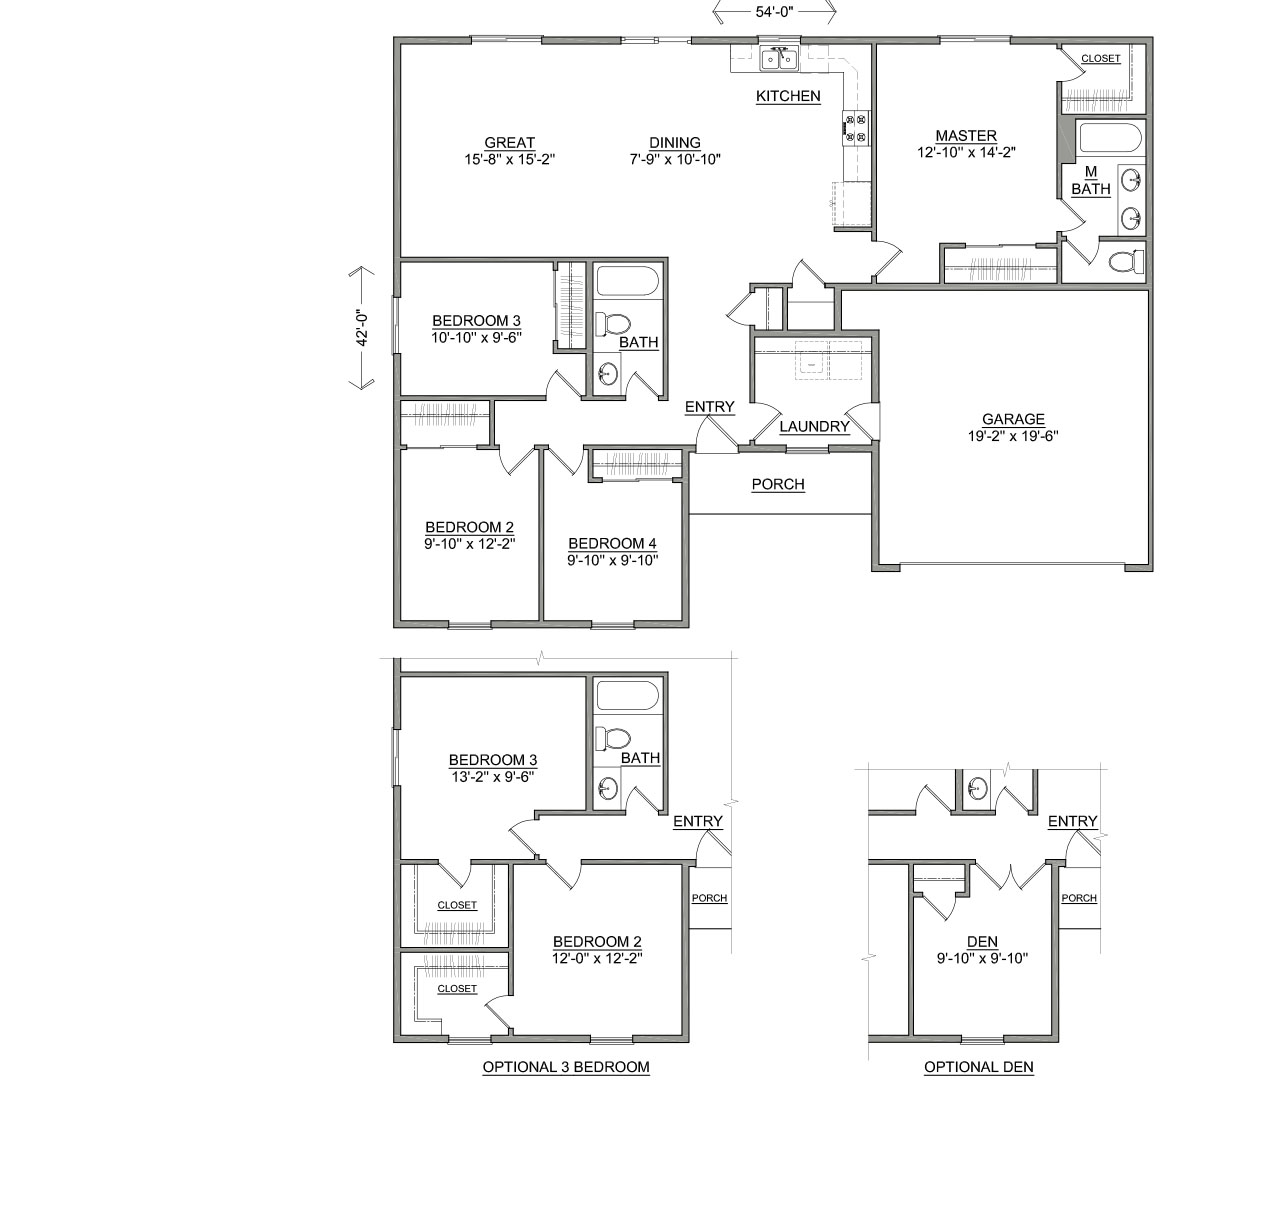 The kelso brand new house for sale wa by hayden homes for Hayden homes floor plans